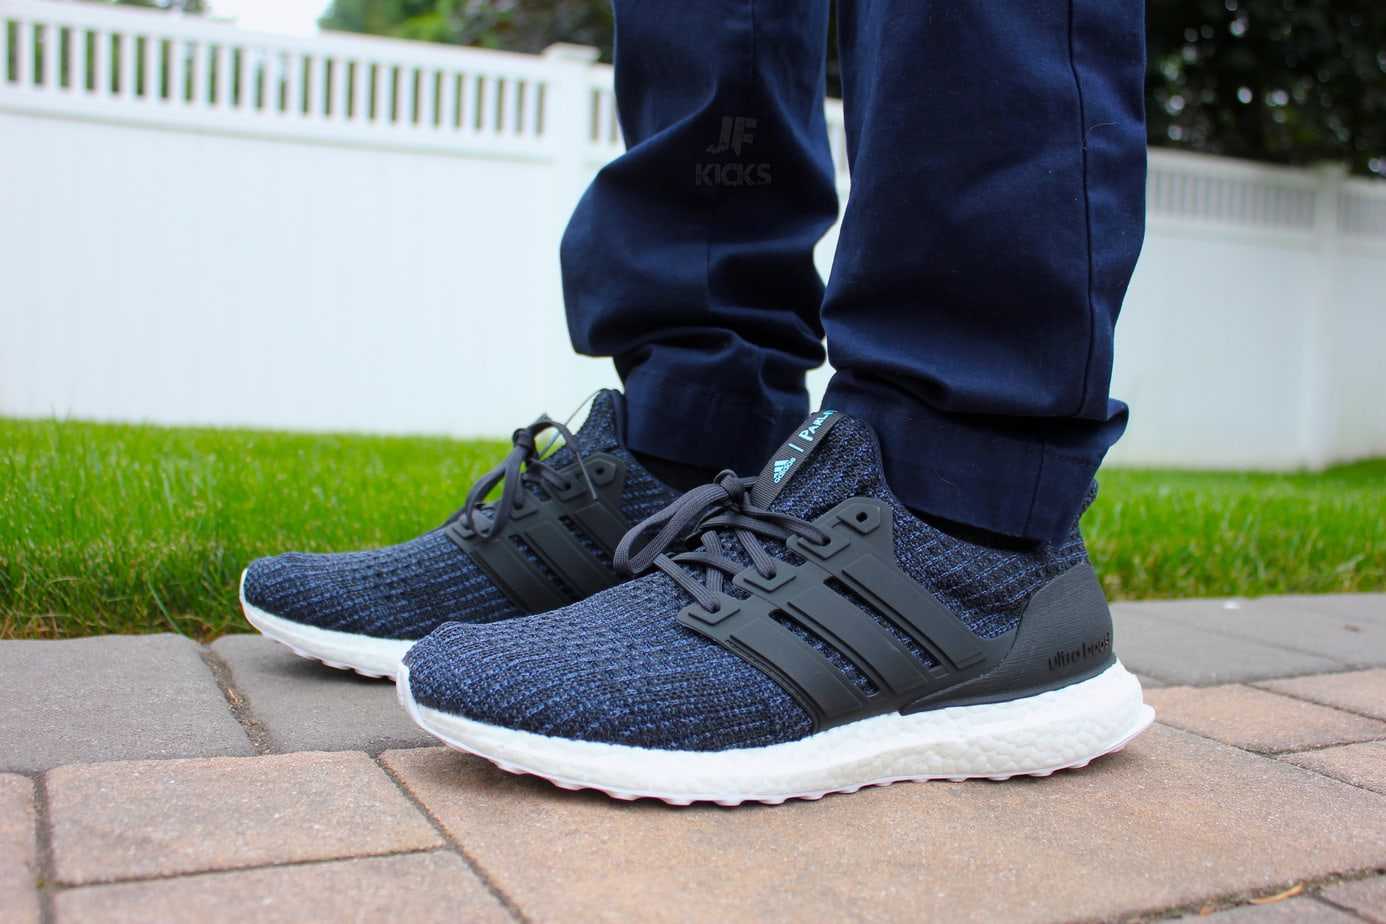 Adidas Ultraboost 4.0 CARBON ASH PEARL / DOPE NEW DARK